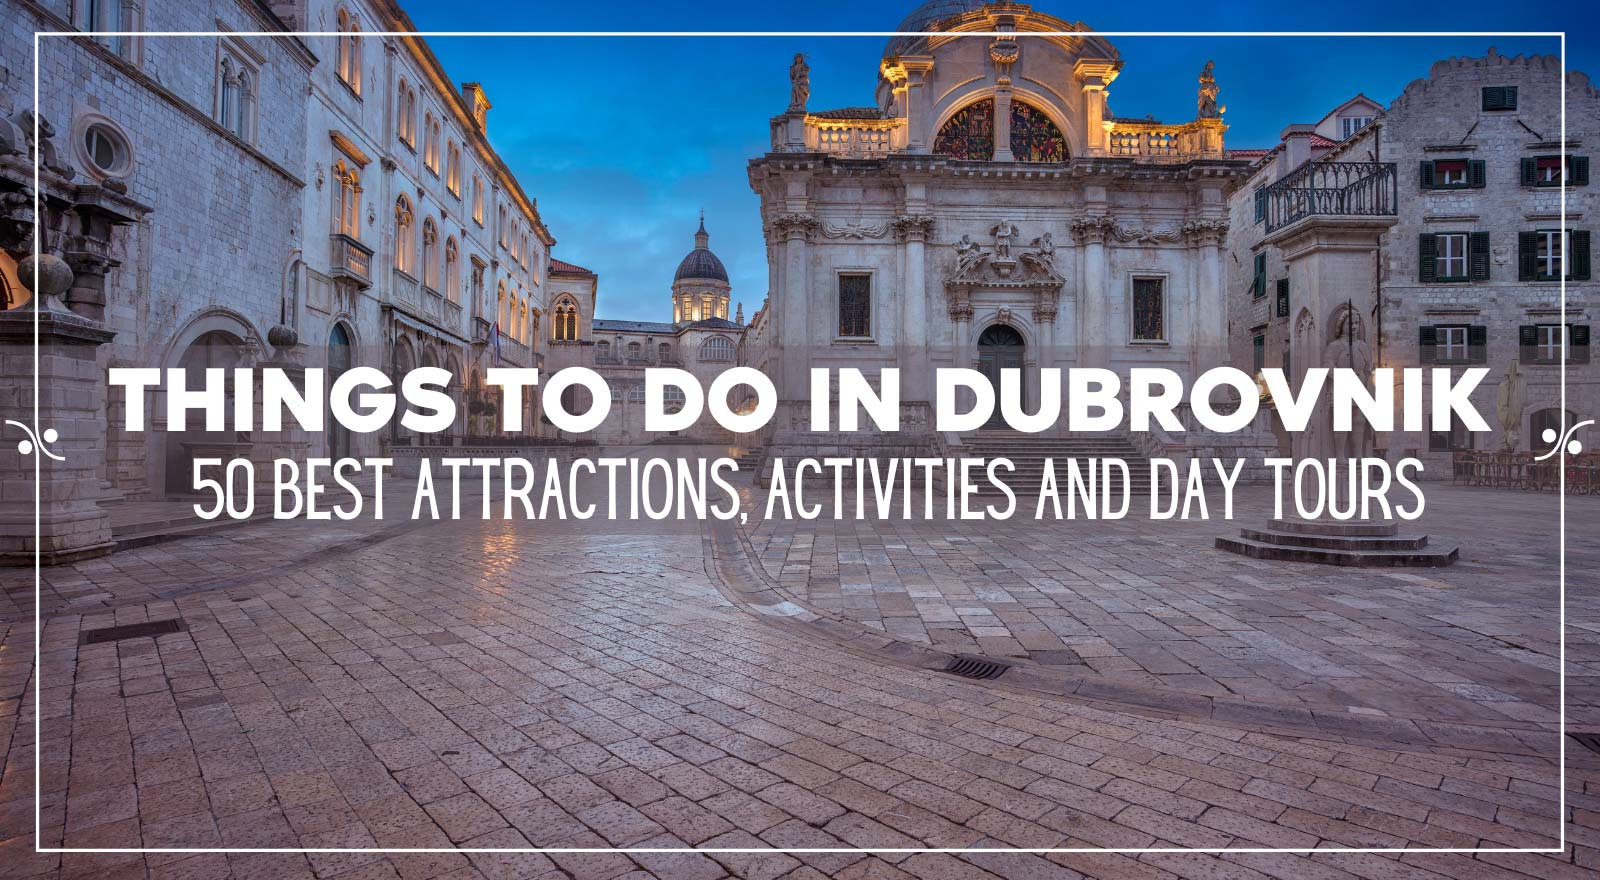 Things To Do In Dubrovnik Croatia: Activities, Attractions and Day Tours